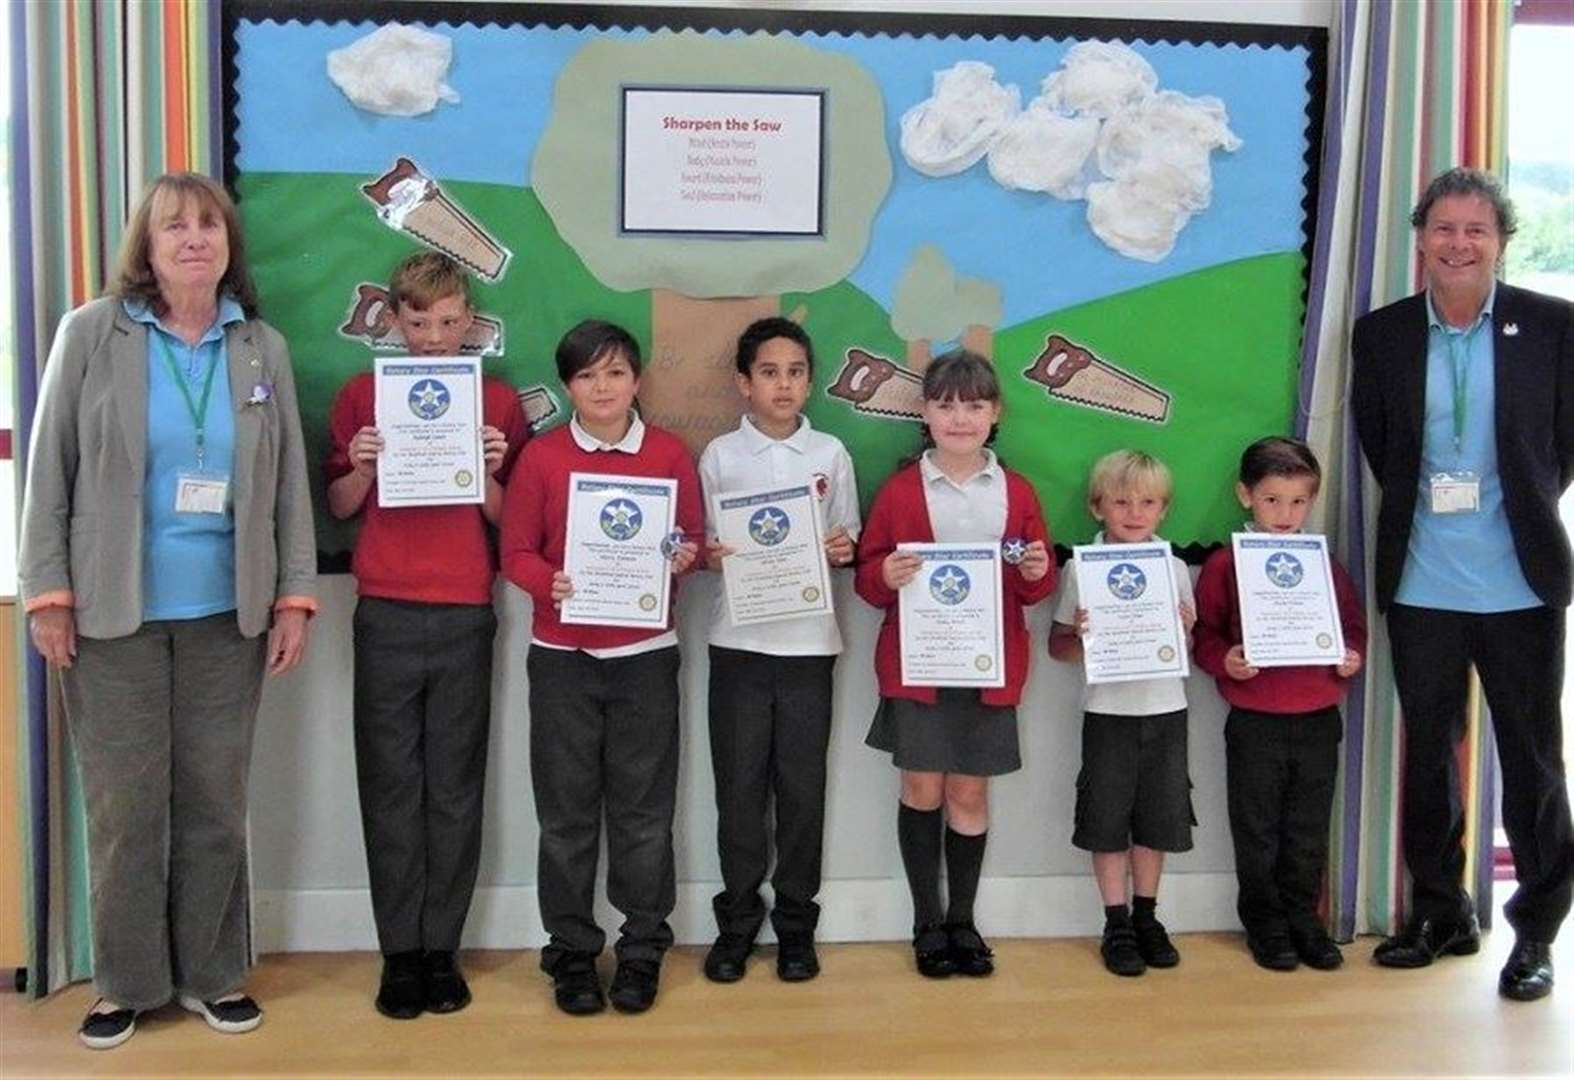 Grantham pupils reach for stars for Rotary award